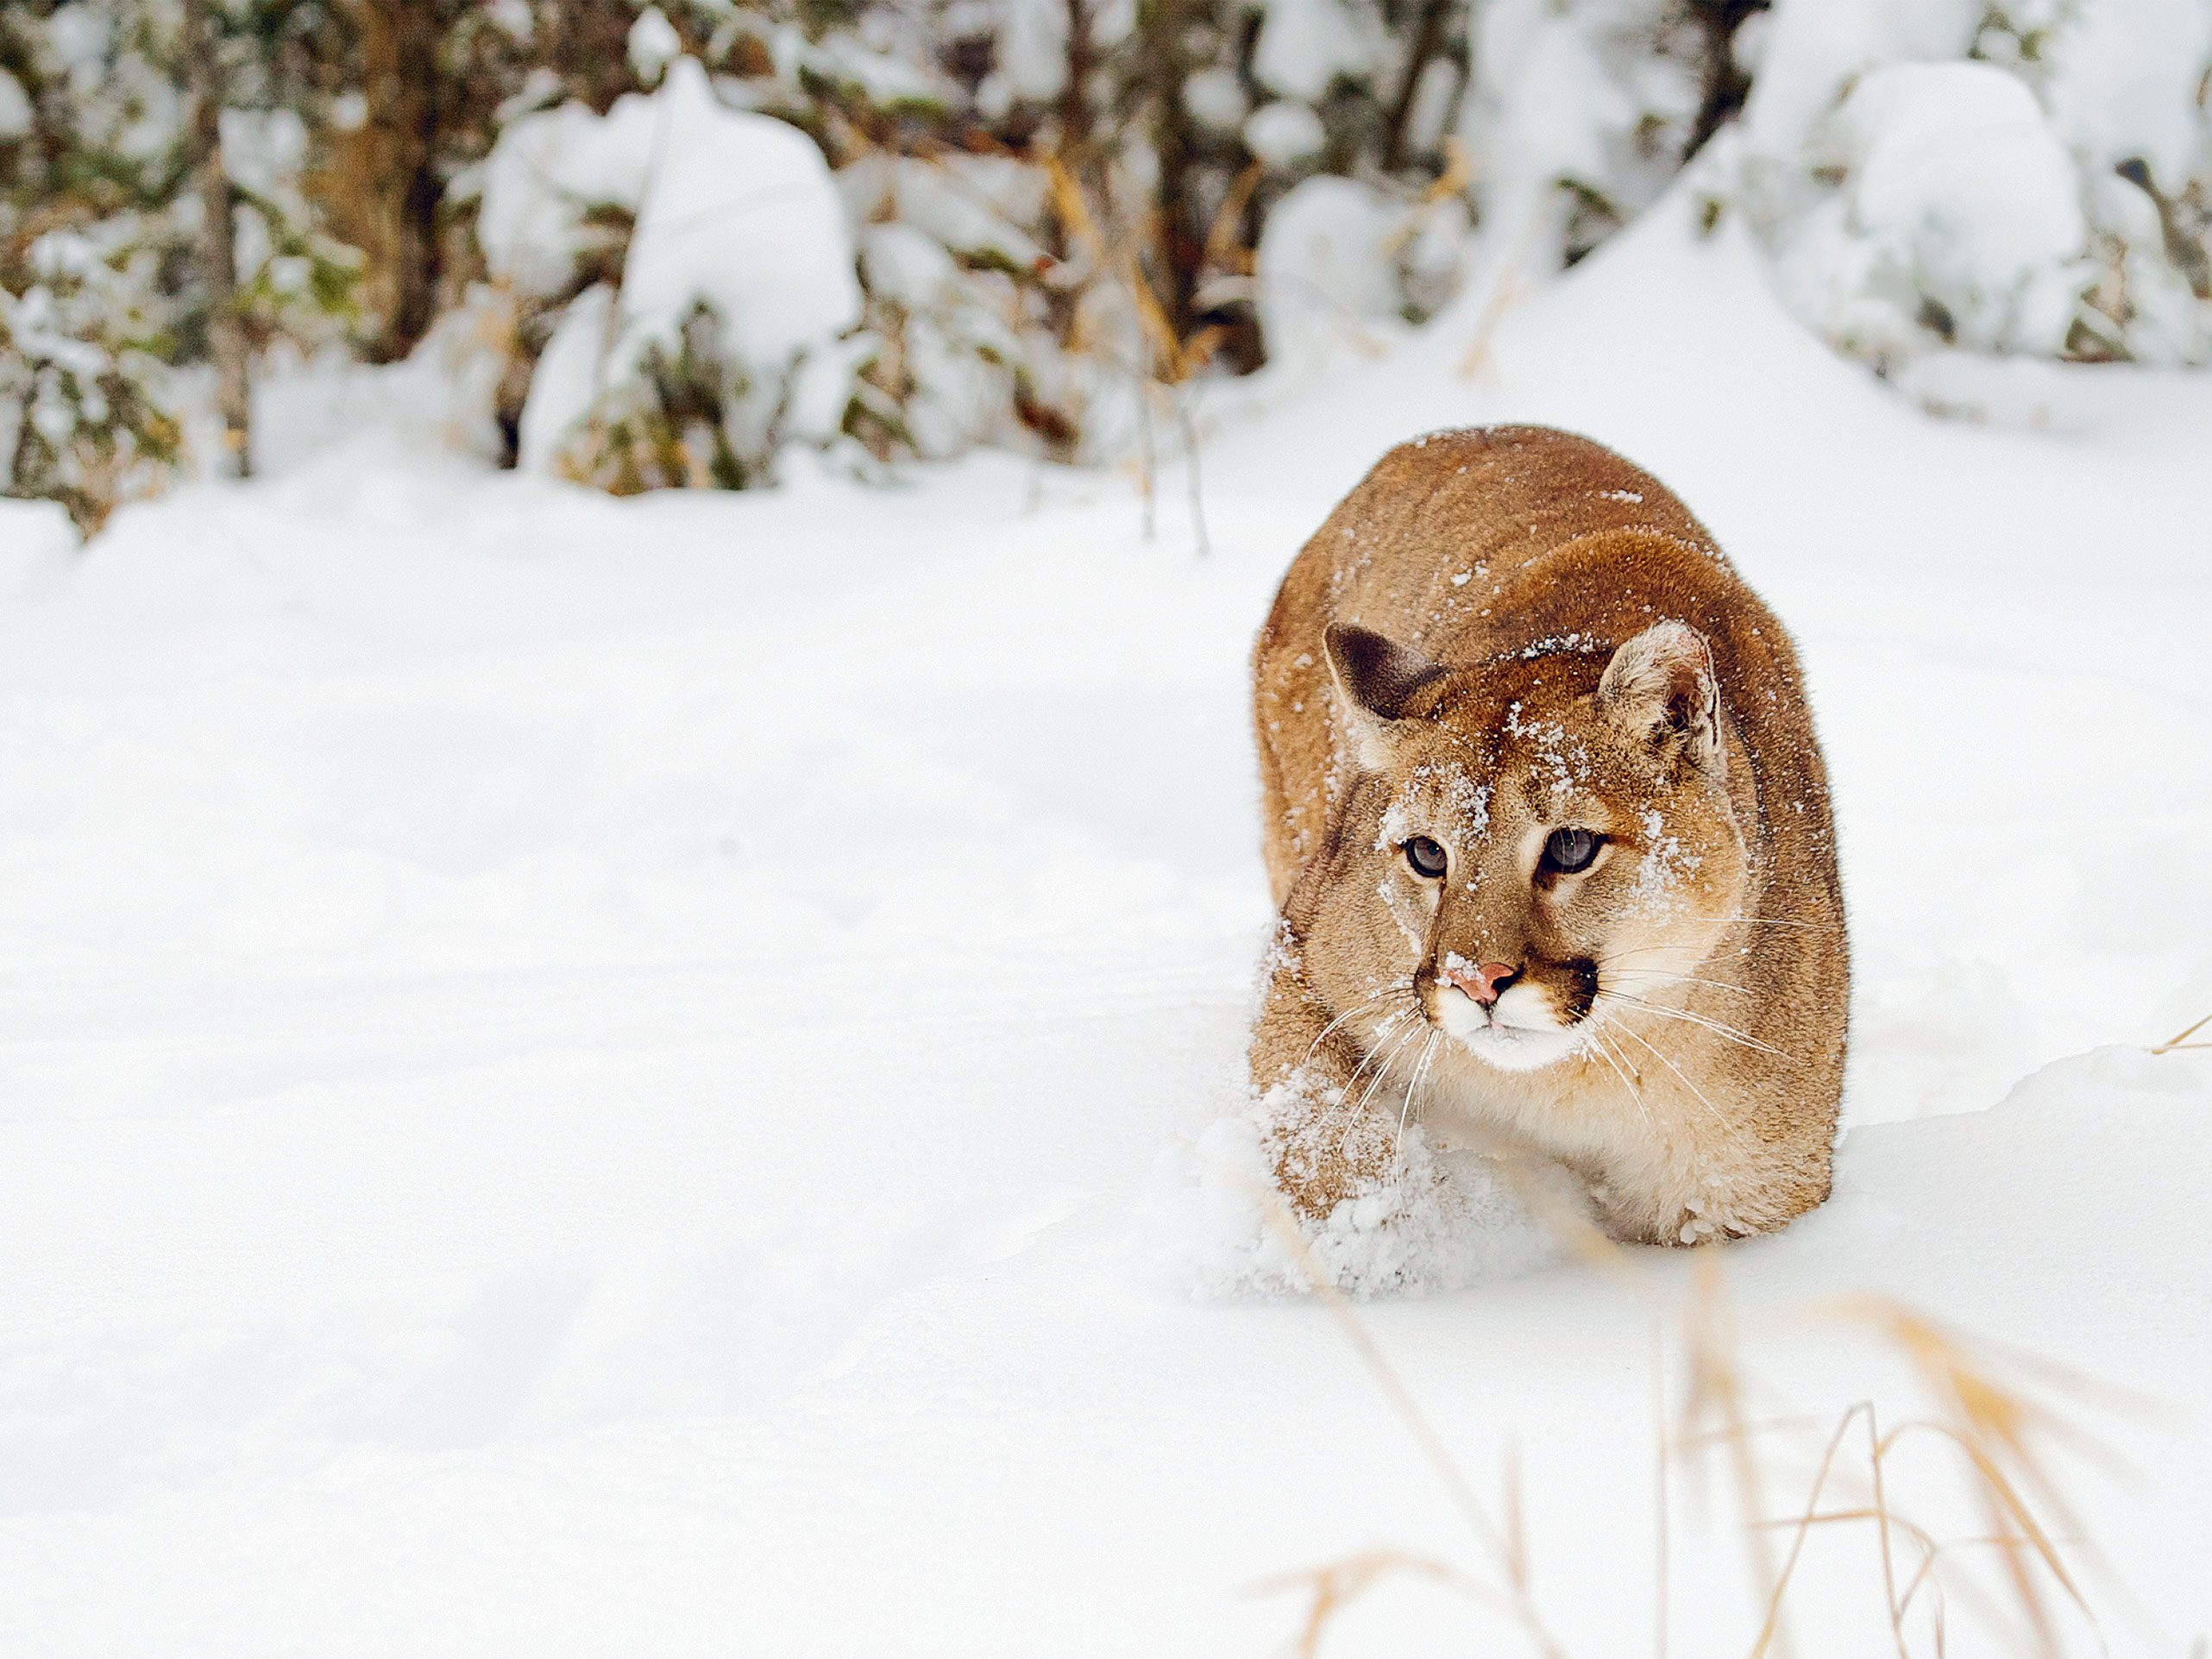 On the Trail of the Killer Cougar